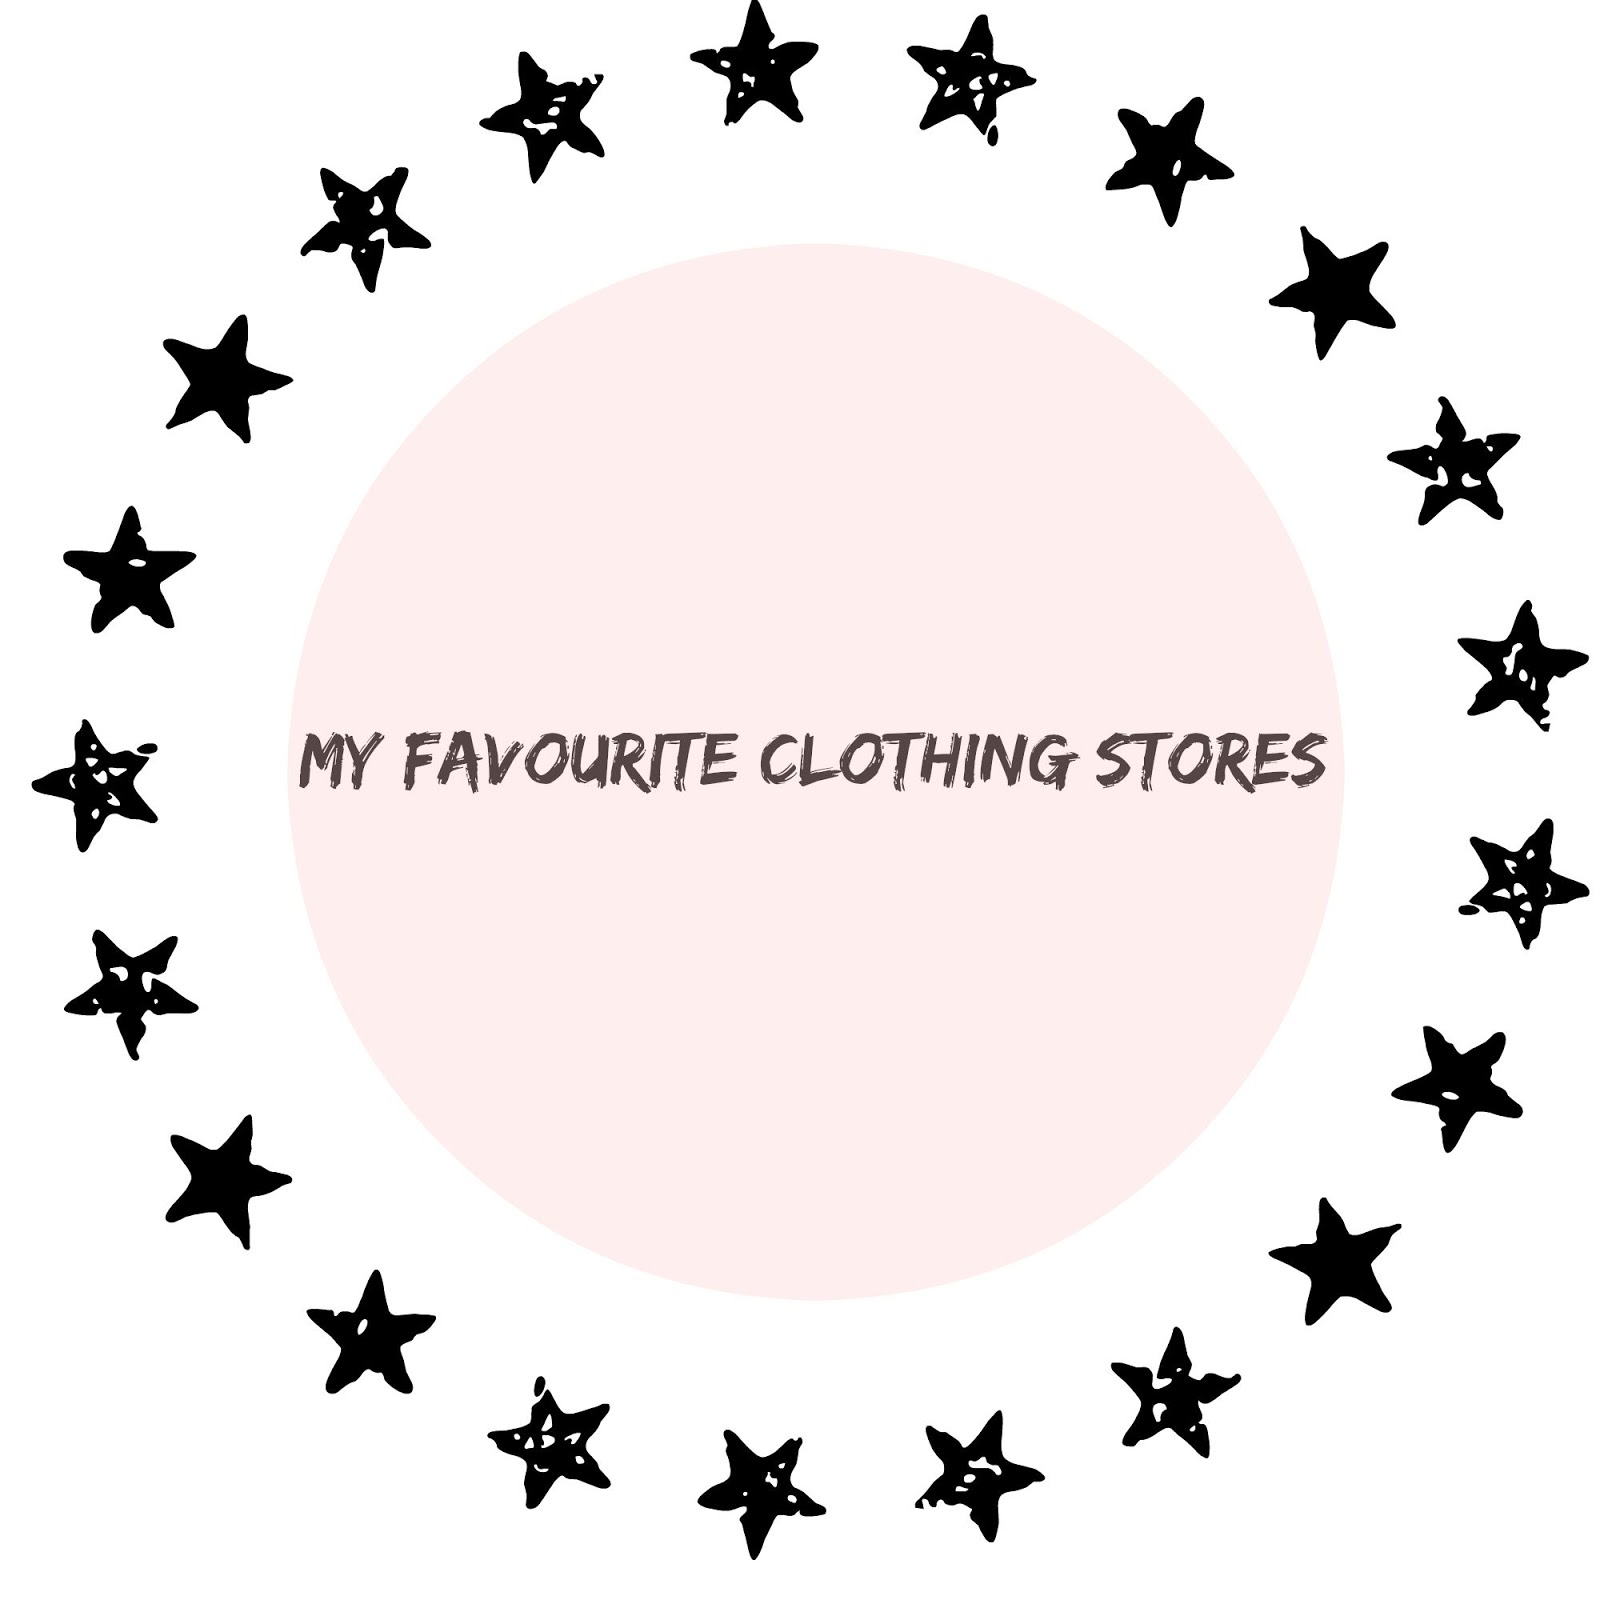 Favourite clothing stores